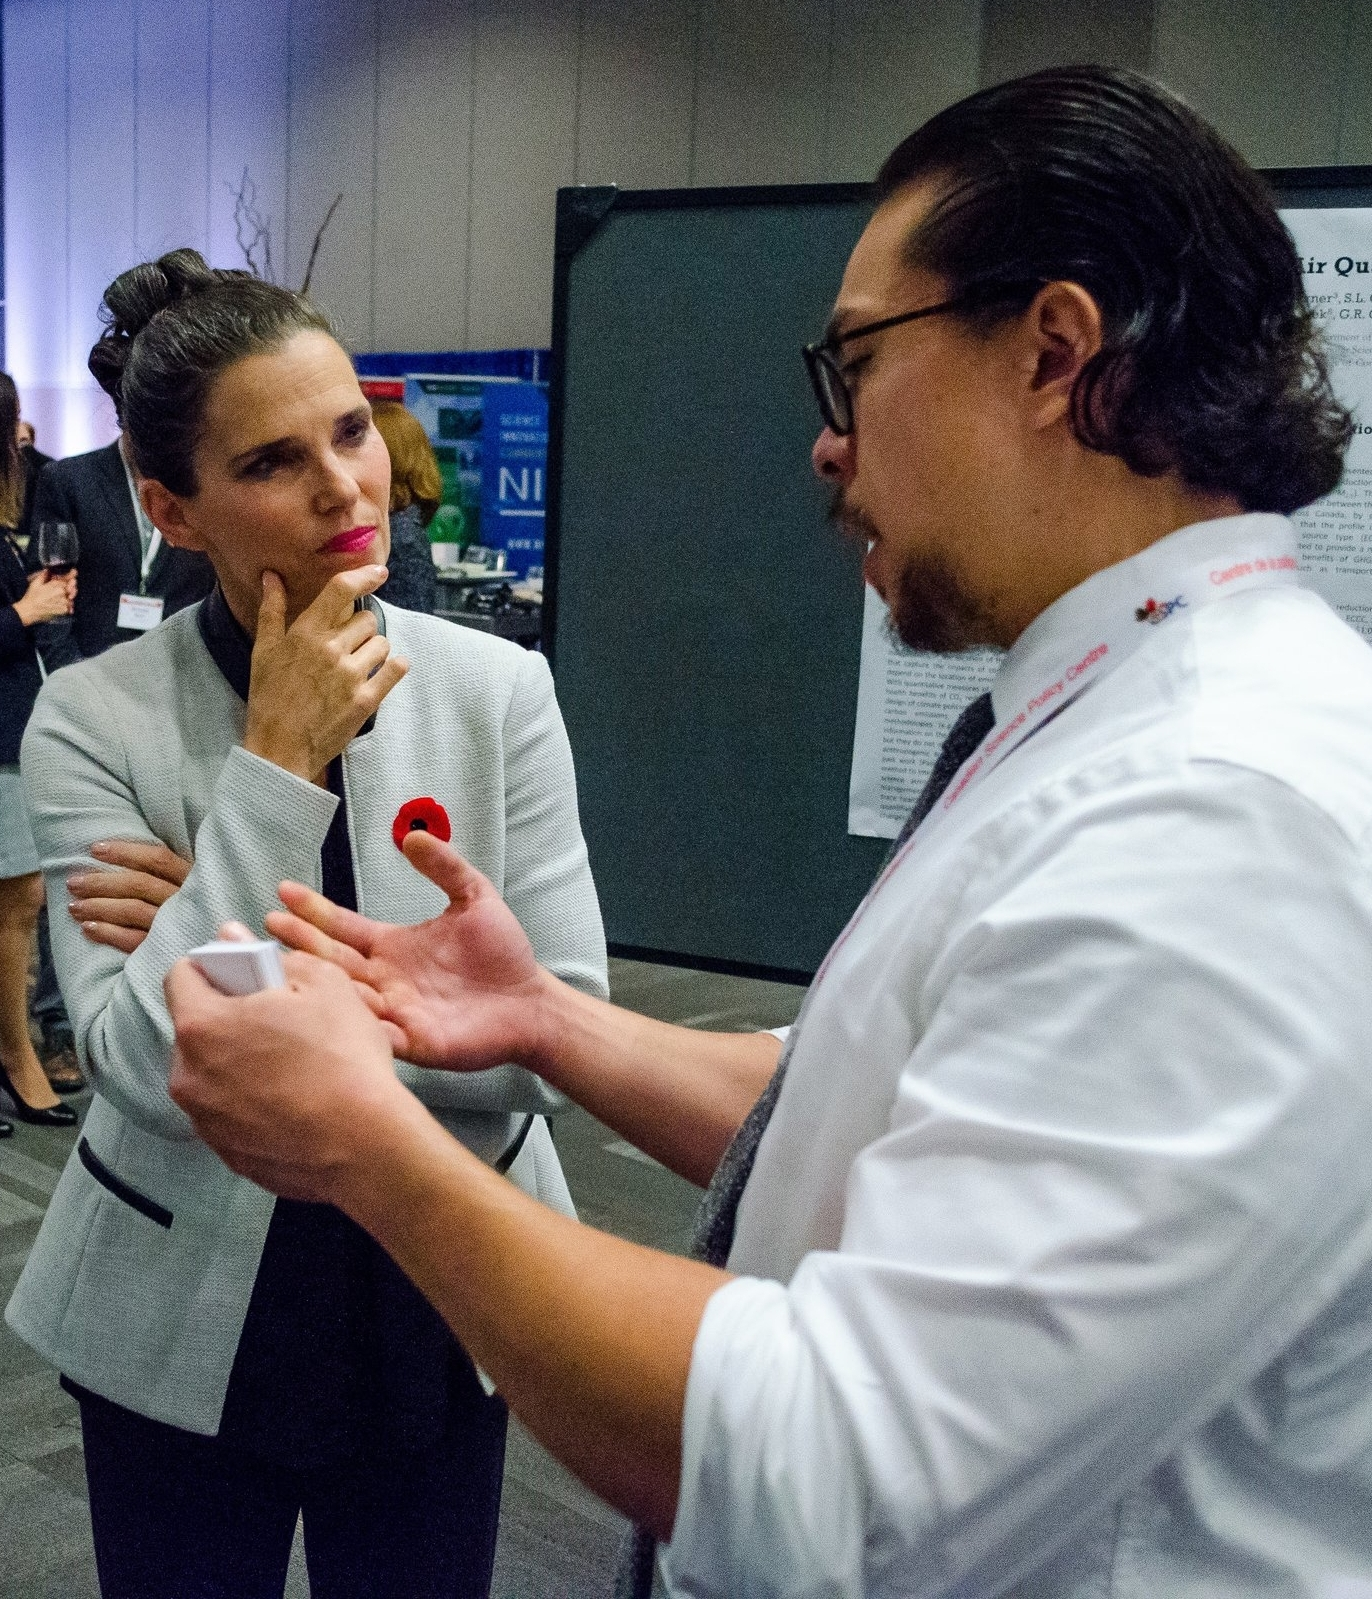 Honourable Kirsty Duncan, Canadian Federal Minister of Science, and eParliament Director, Dr. Gianni M. Castiglione, discussed eParliament at the  9th Canadian Science Policy Conference  in Ottawa, Nov 2 2017. Gianni was an  Honoured Participant  in the 3rd Annual Youth Award of Excellence.